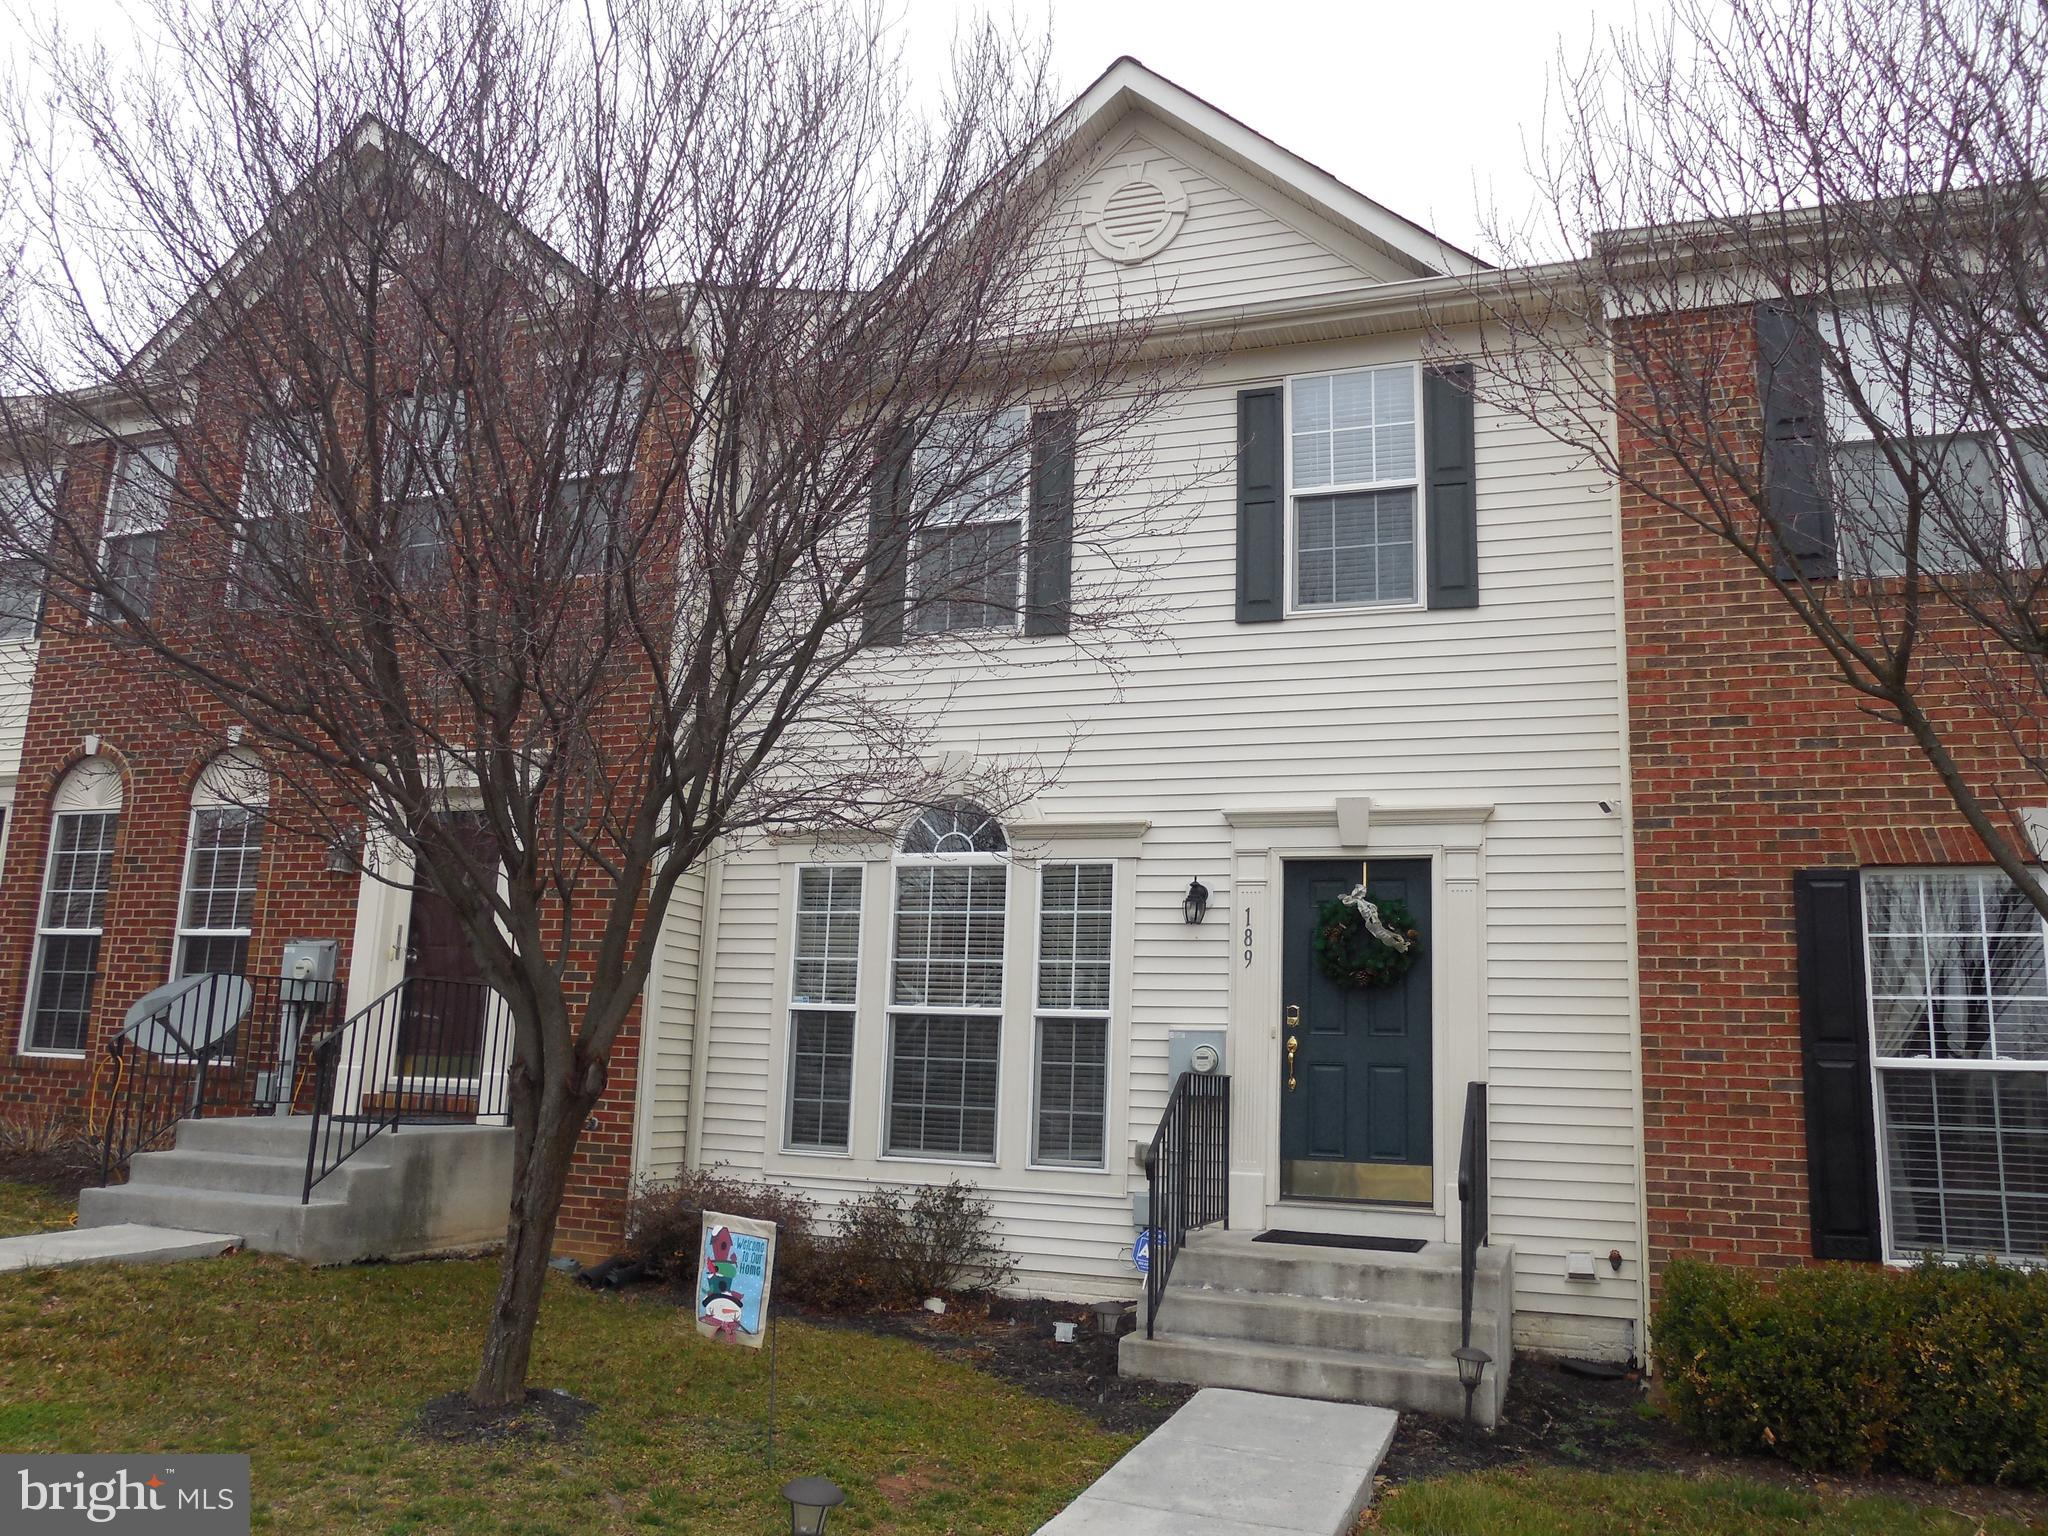 Where to begin!?  Unique opportunity to own this FULLY FURNISHED, immaculate townhome in desirable Oxbow Estates!  Everything you see is included with the sale, and there are some amazing pieces.  This home has been a successful Airbnb and a $1400/month rental, and now it can be yours!  Upgrades abound, including crown molding, chair railing, gleaming hardwoods on main and upper floors...even the staircase!  Gourmet kitchen with granite counters and island, tile backsplash,  stainless appliances, and double/convection ovens.  Dining area in kitchen complete with lovely gas fireplace and mantle.  Trex deck off kitchen with a nice view of the woods.  Vaulted master suite, Jacuzzi tub, double sink, tile flooring, and separate shower in master bath.  Mostly finished, walkout basement has a third full bath and ample storage.  Includes 1 year home warranty.  Convenient commuter location, just two minutes to I66!  You will not be disappointed!!